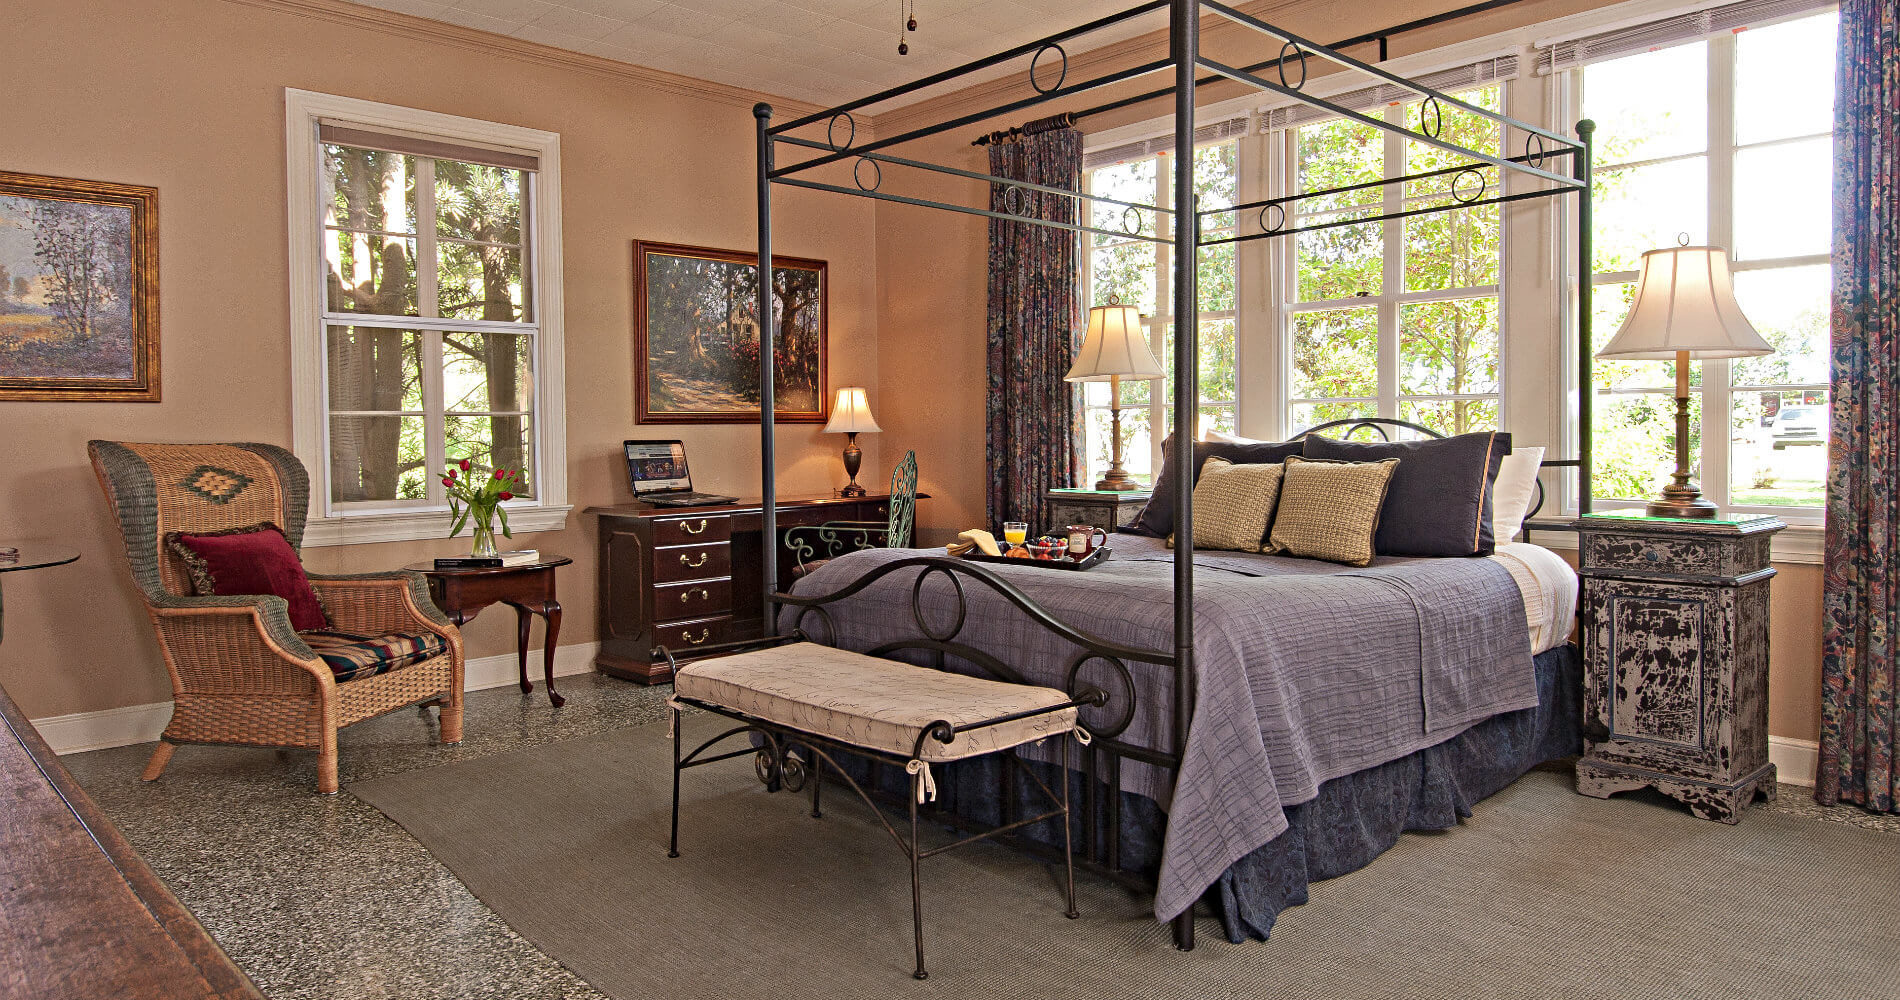 Large bedroom with peach walls and a queen sized iron bed, desk and chairs